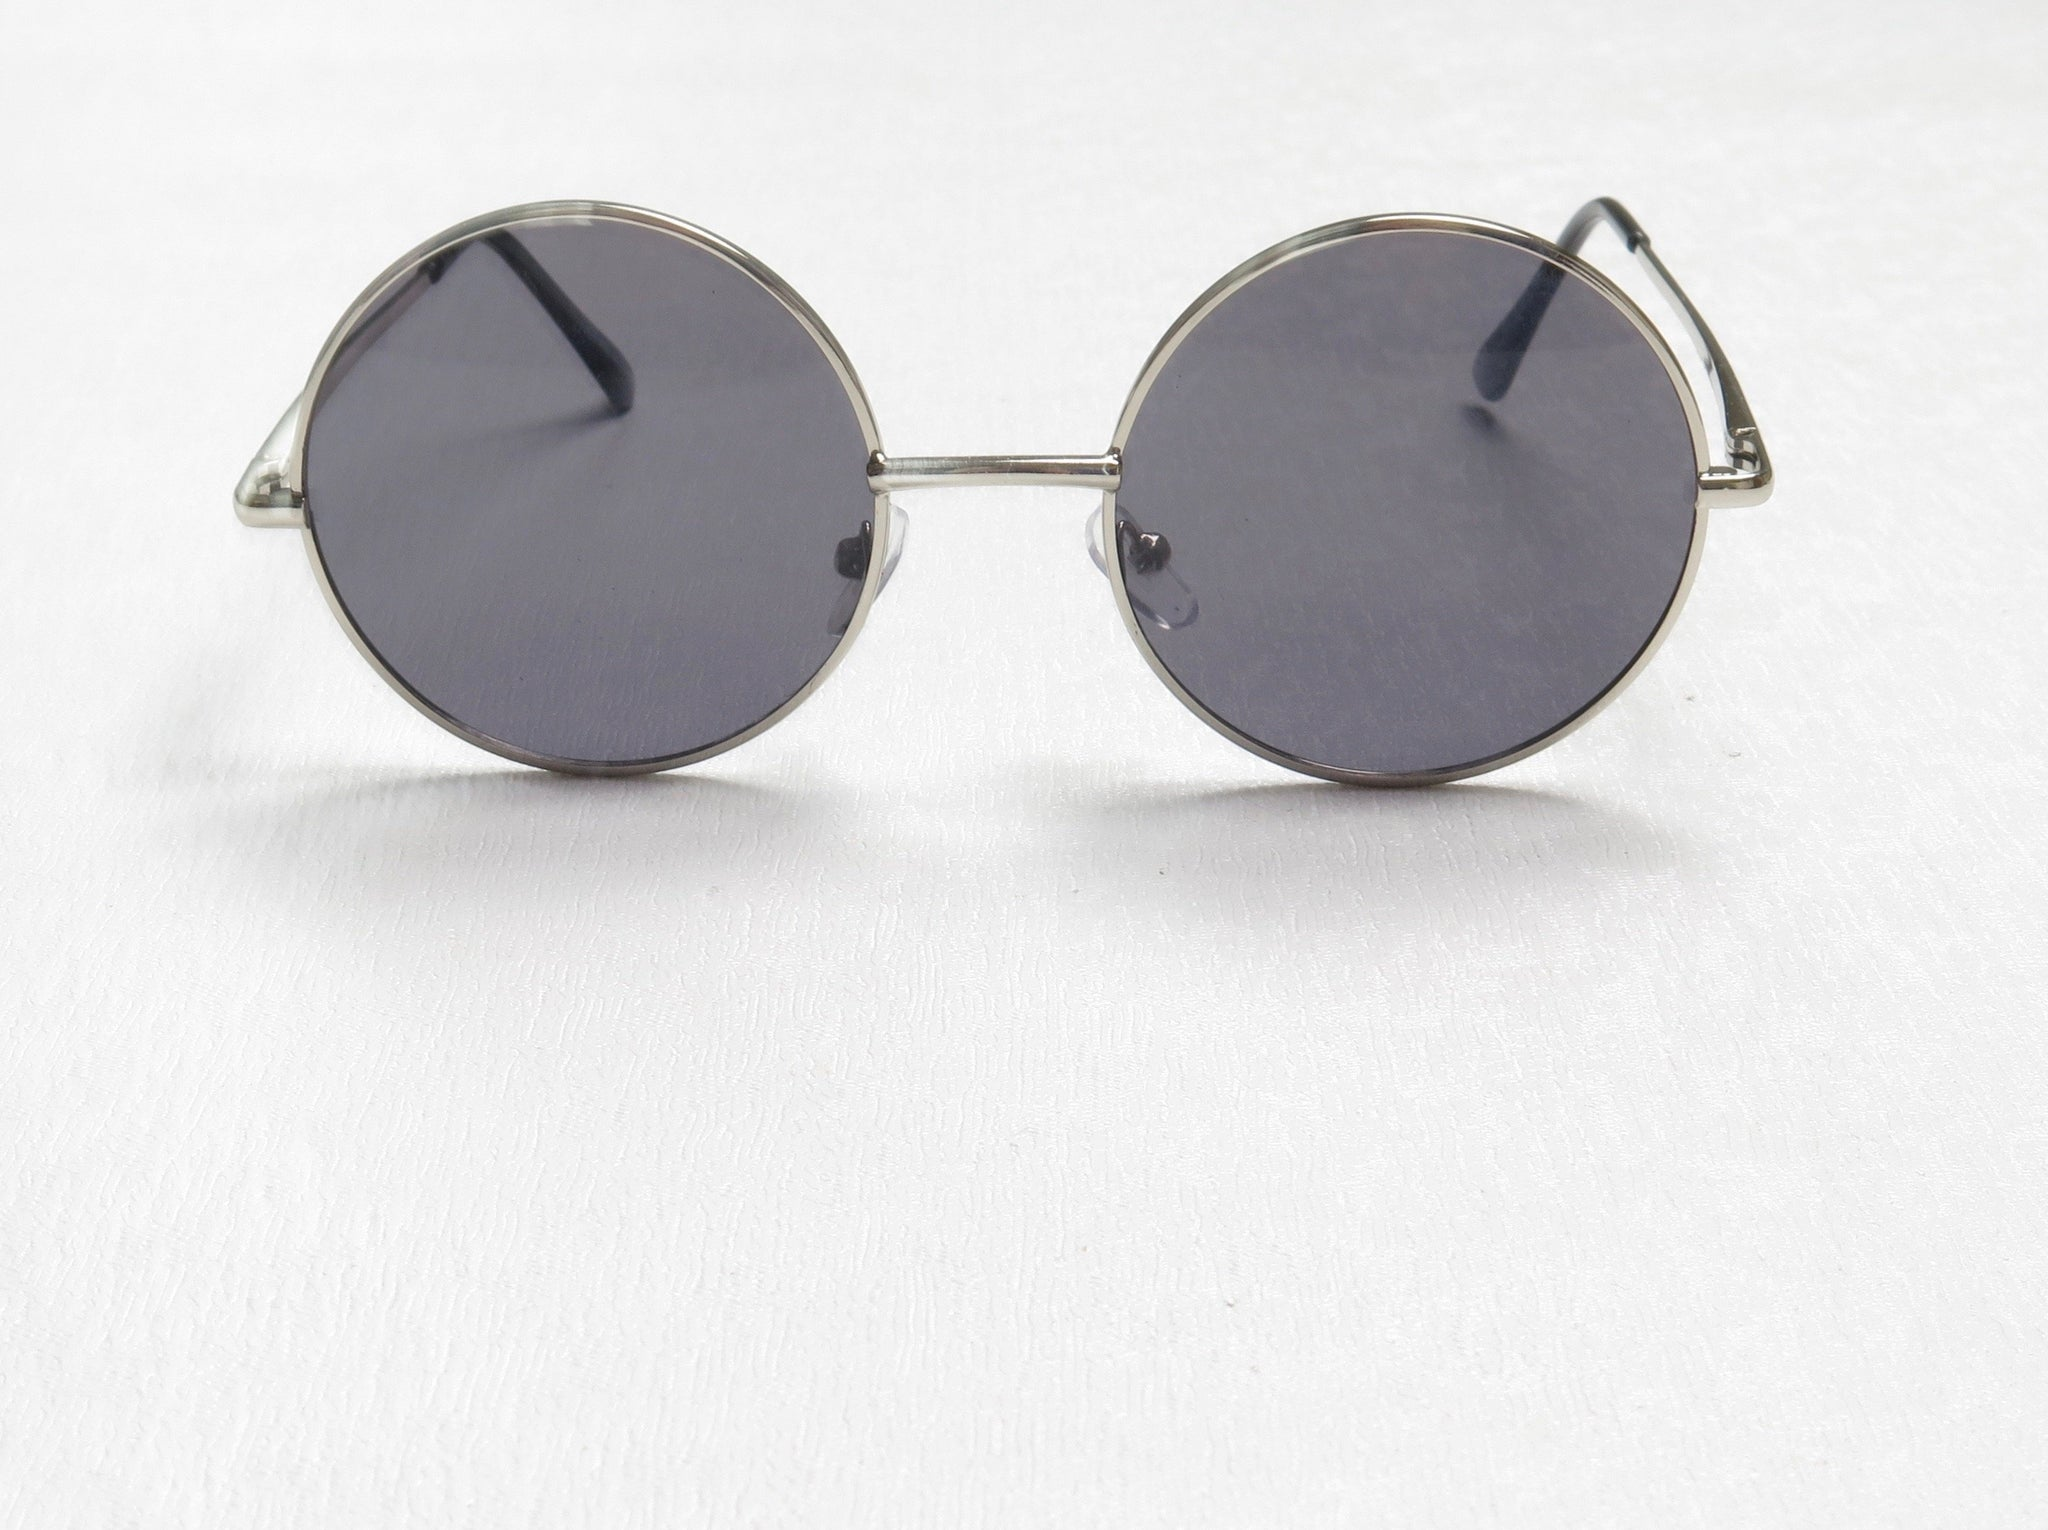 Silver Lennon Sunglasses With Light Black Lenses  (Medium)